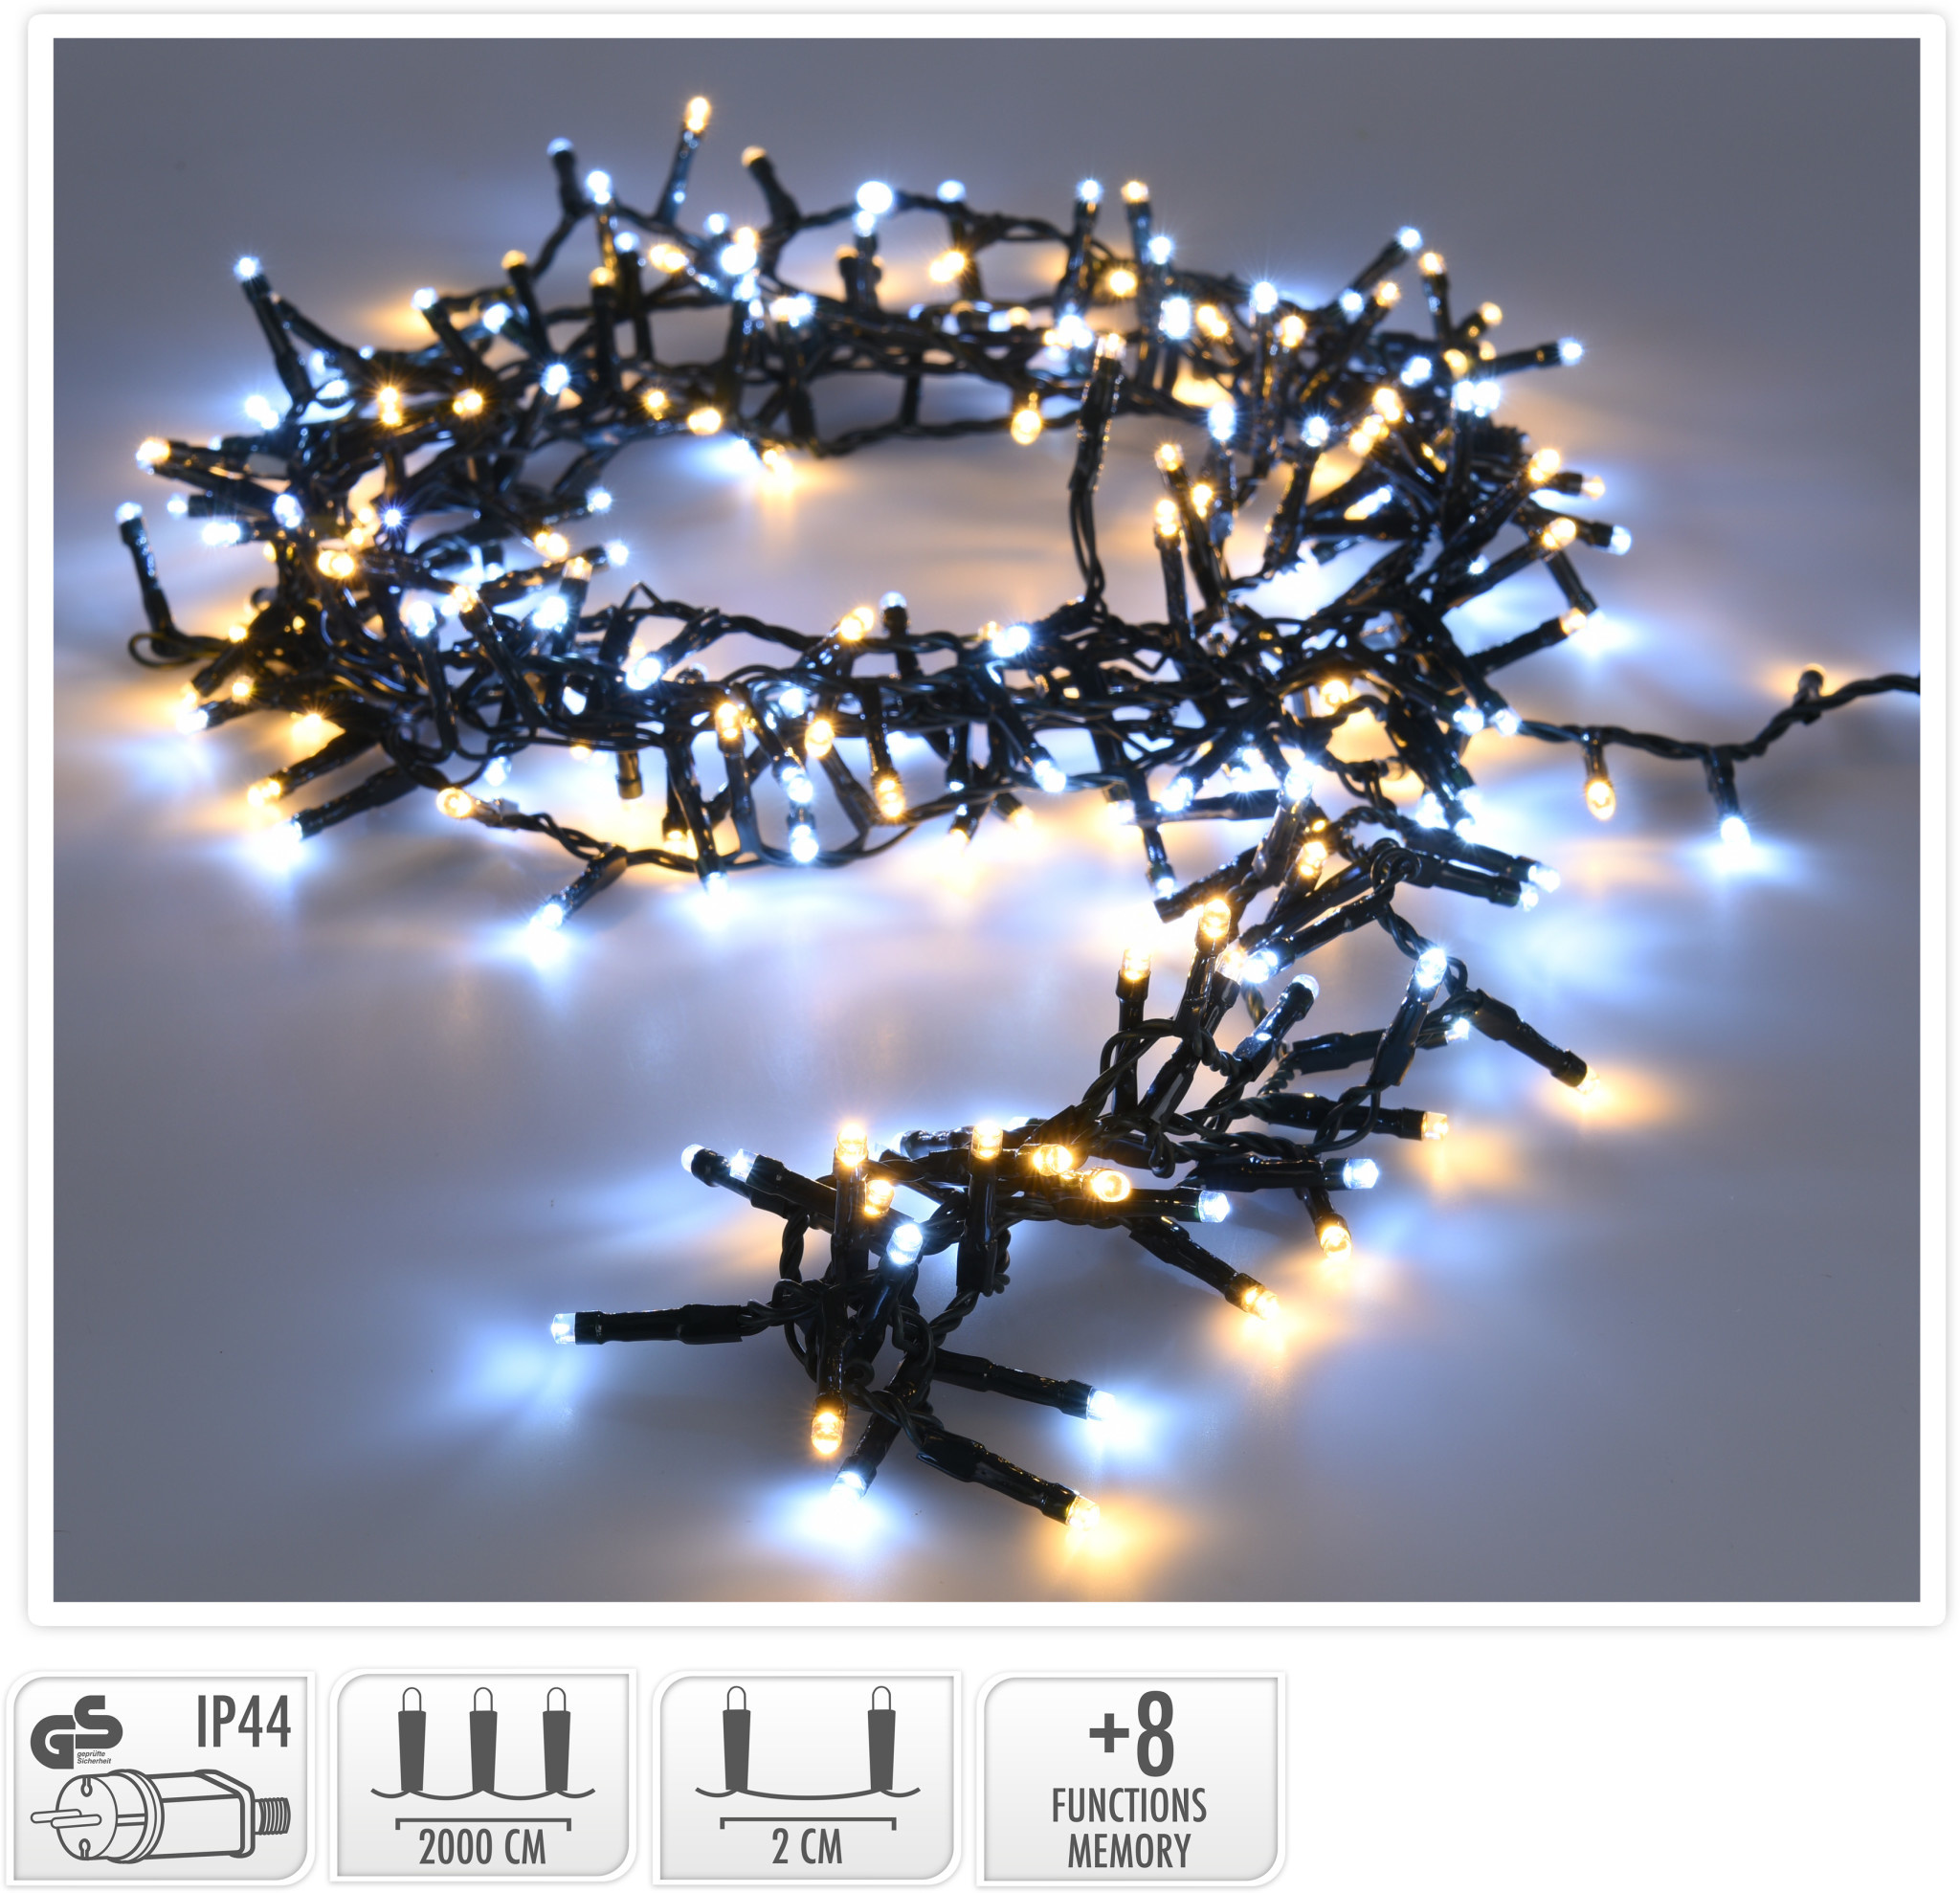 MICROCLUSTER 1000LED 20MTR-1